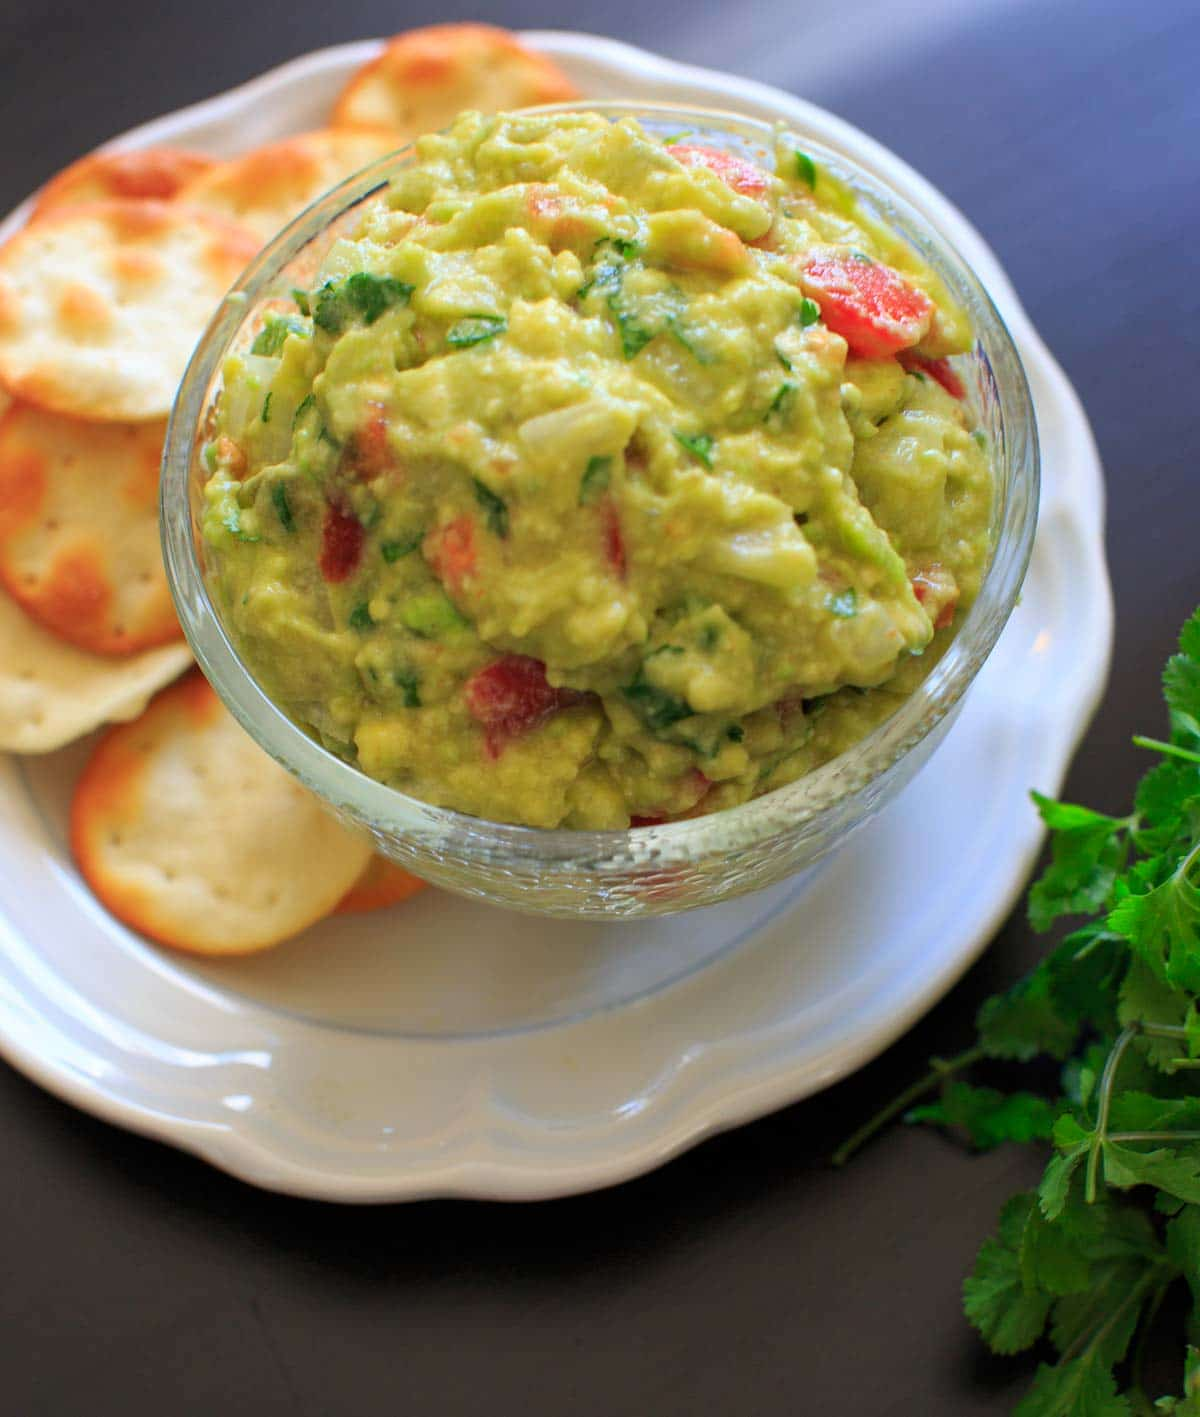 The BEST EVER guacamole recipe that's a little spicy, full of flavor and naturally vegan and gluten-free. Includes tips on how to make it your own if you need to modify.